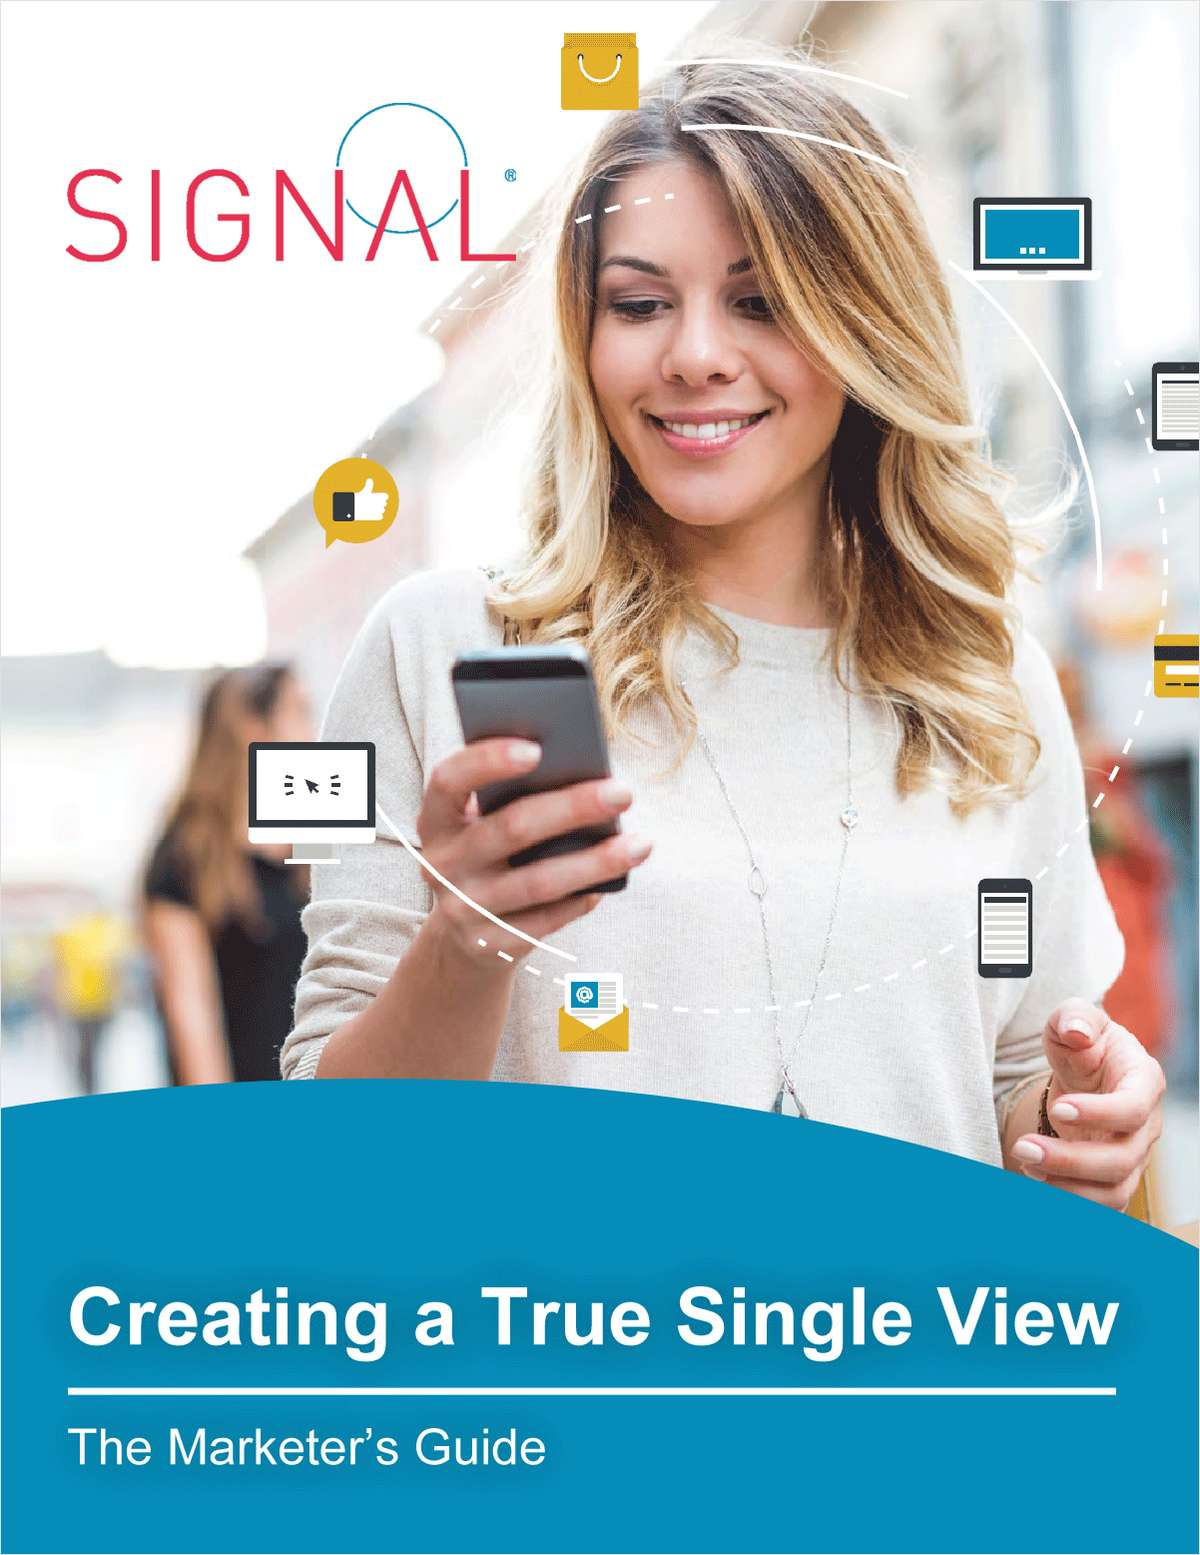 Why Marketers Are Using Single View of Customers For Better Personalized Targeting